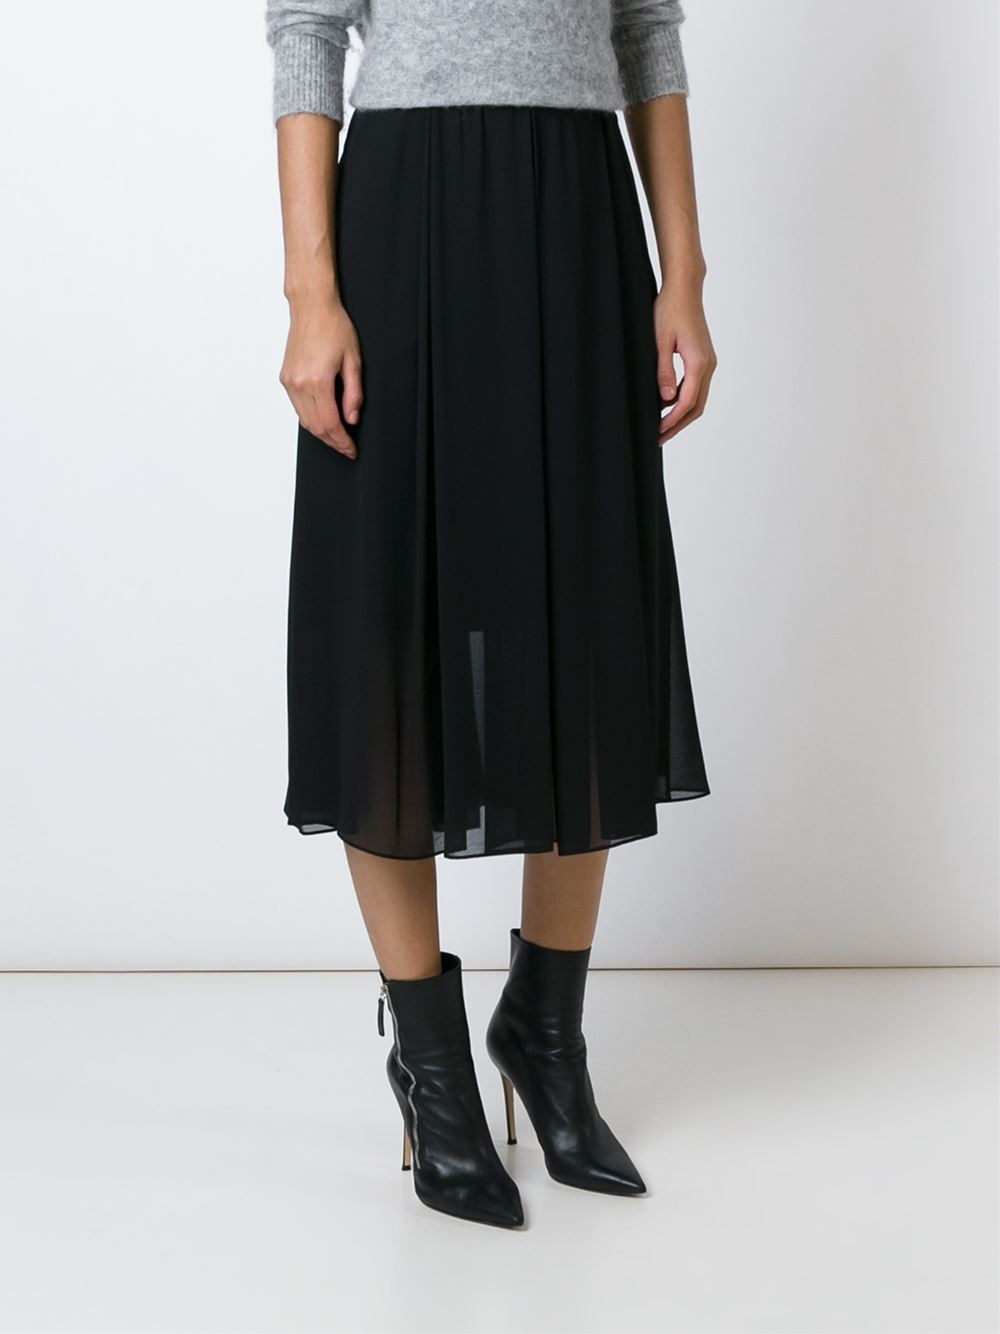 179f106e07 By Malene Birger Sheer Pleated Midi Skirt in Black - Lyst